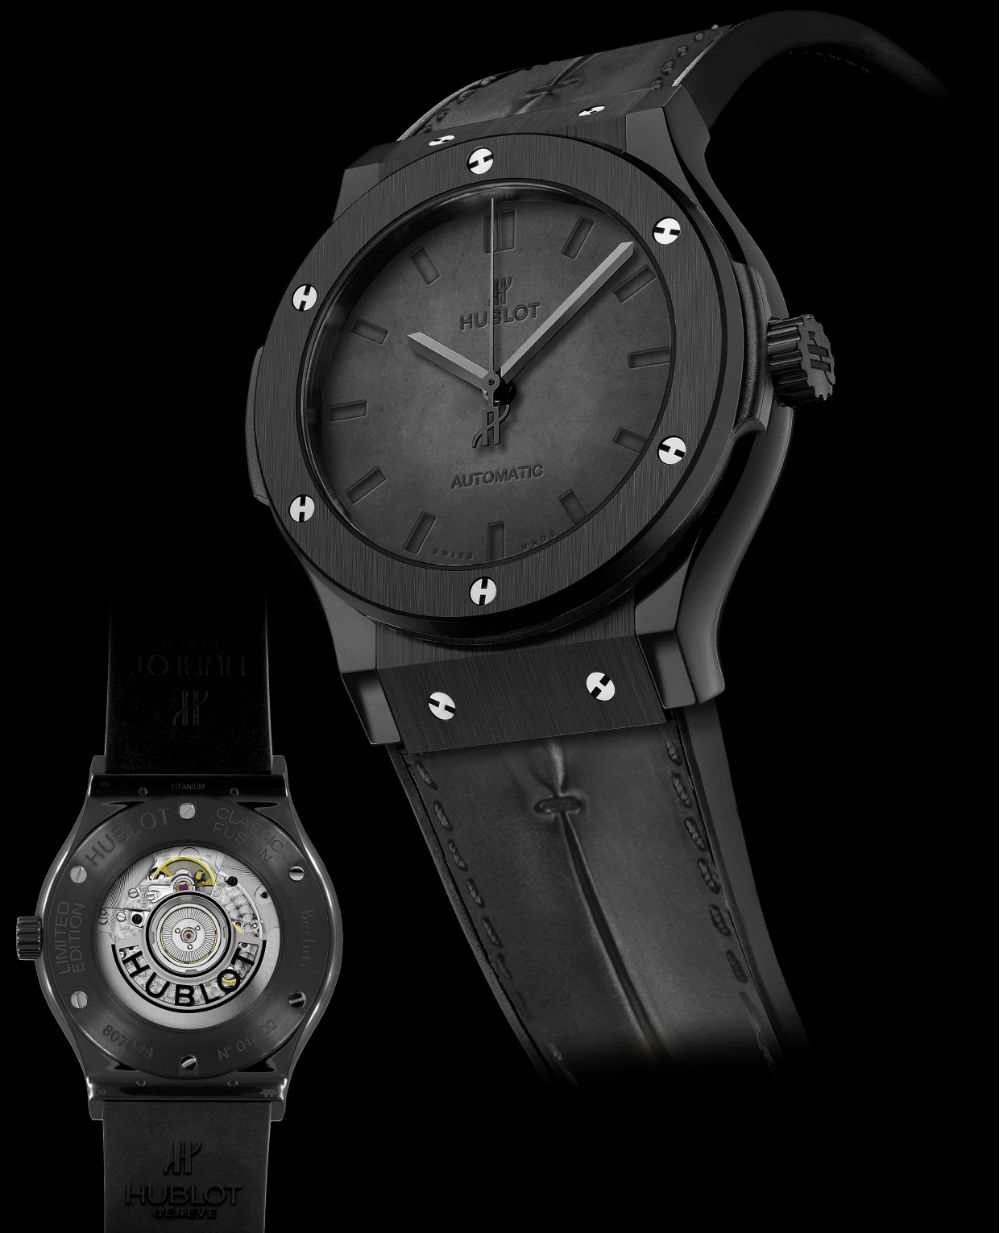 Hublot Classic Fusion Berluti Watch In All Black Scritto Ablogtowatch Hublot Classic Hublot Classic Fusion Hublot